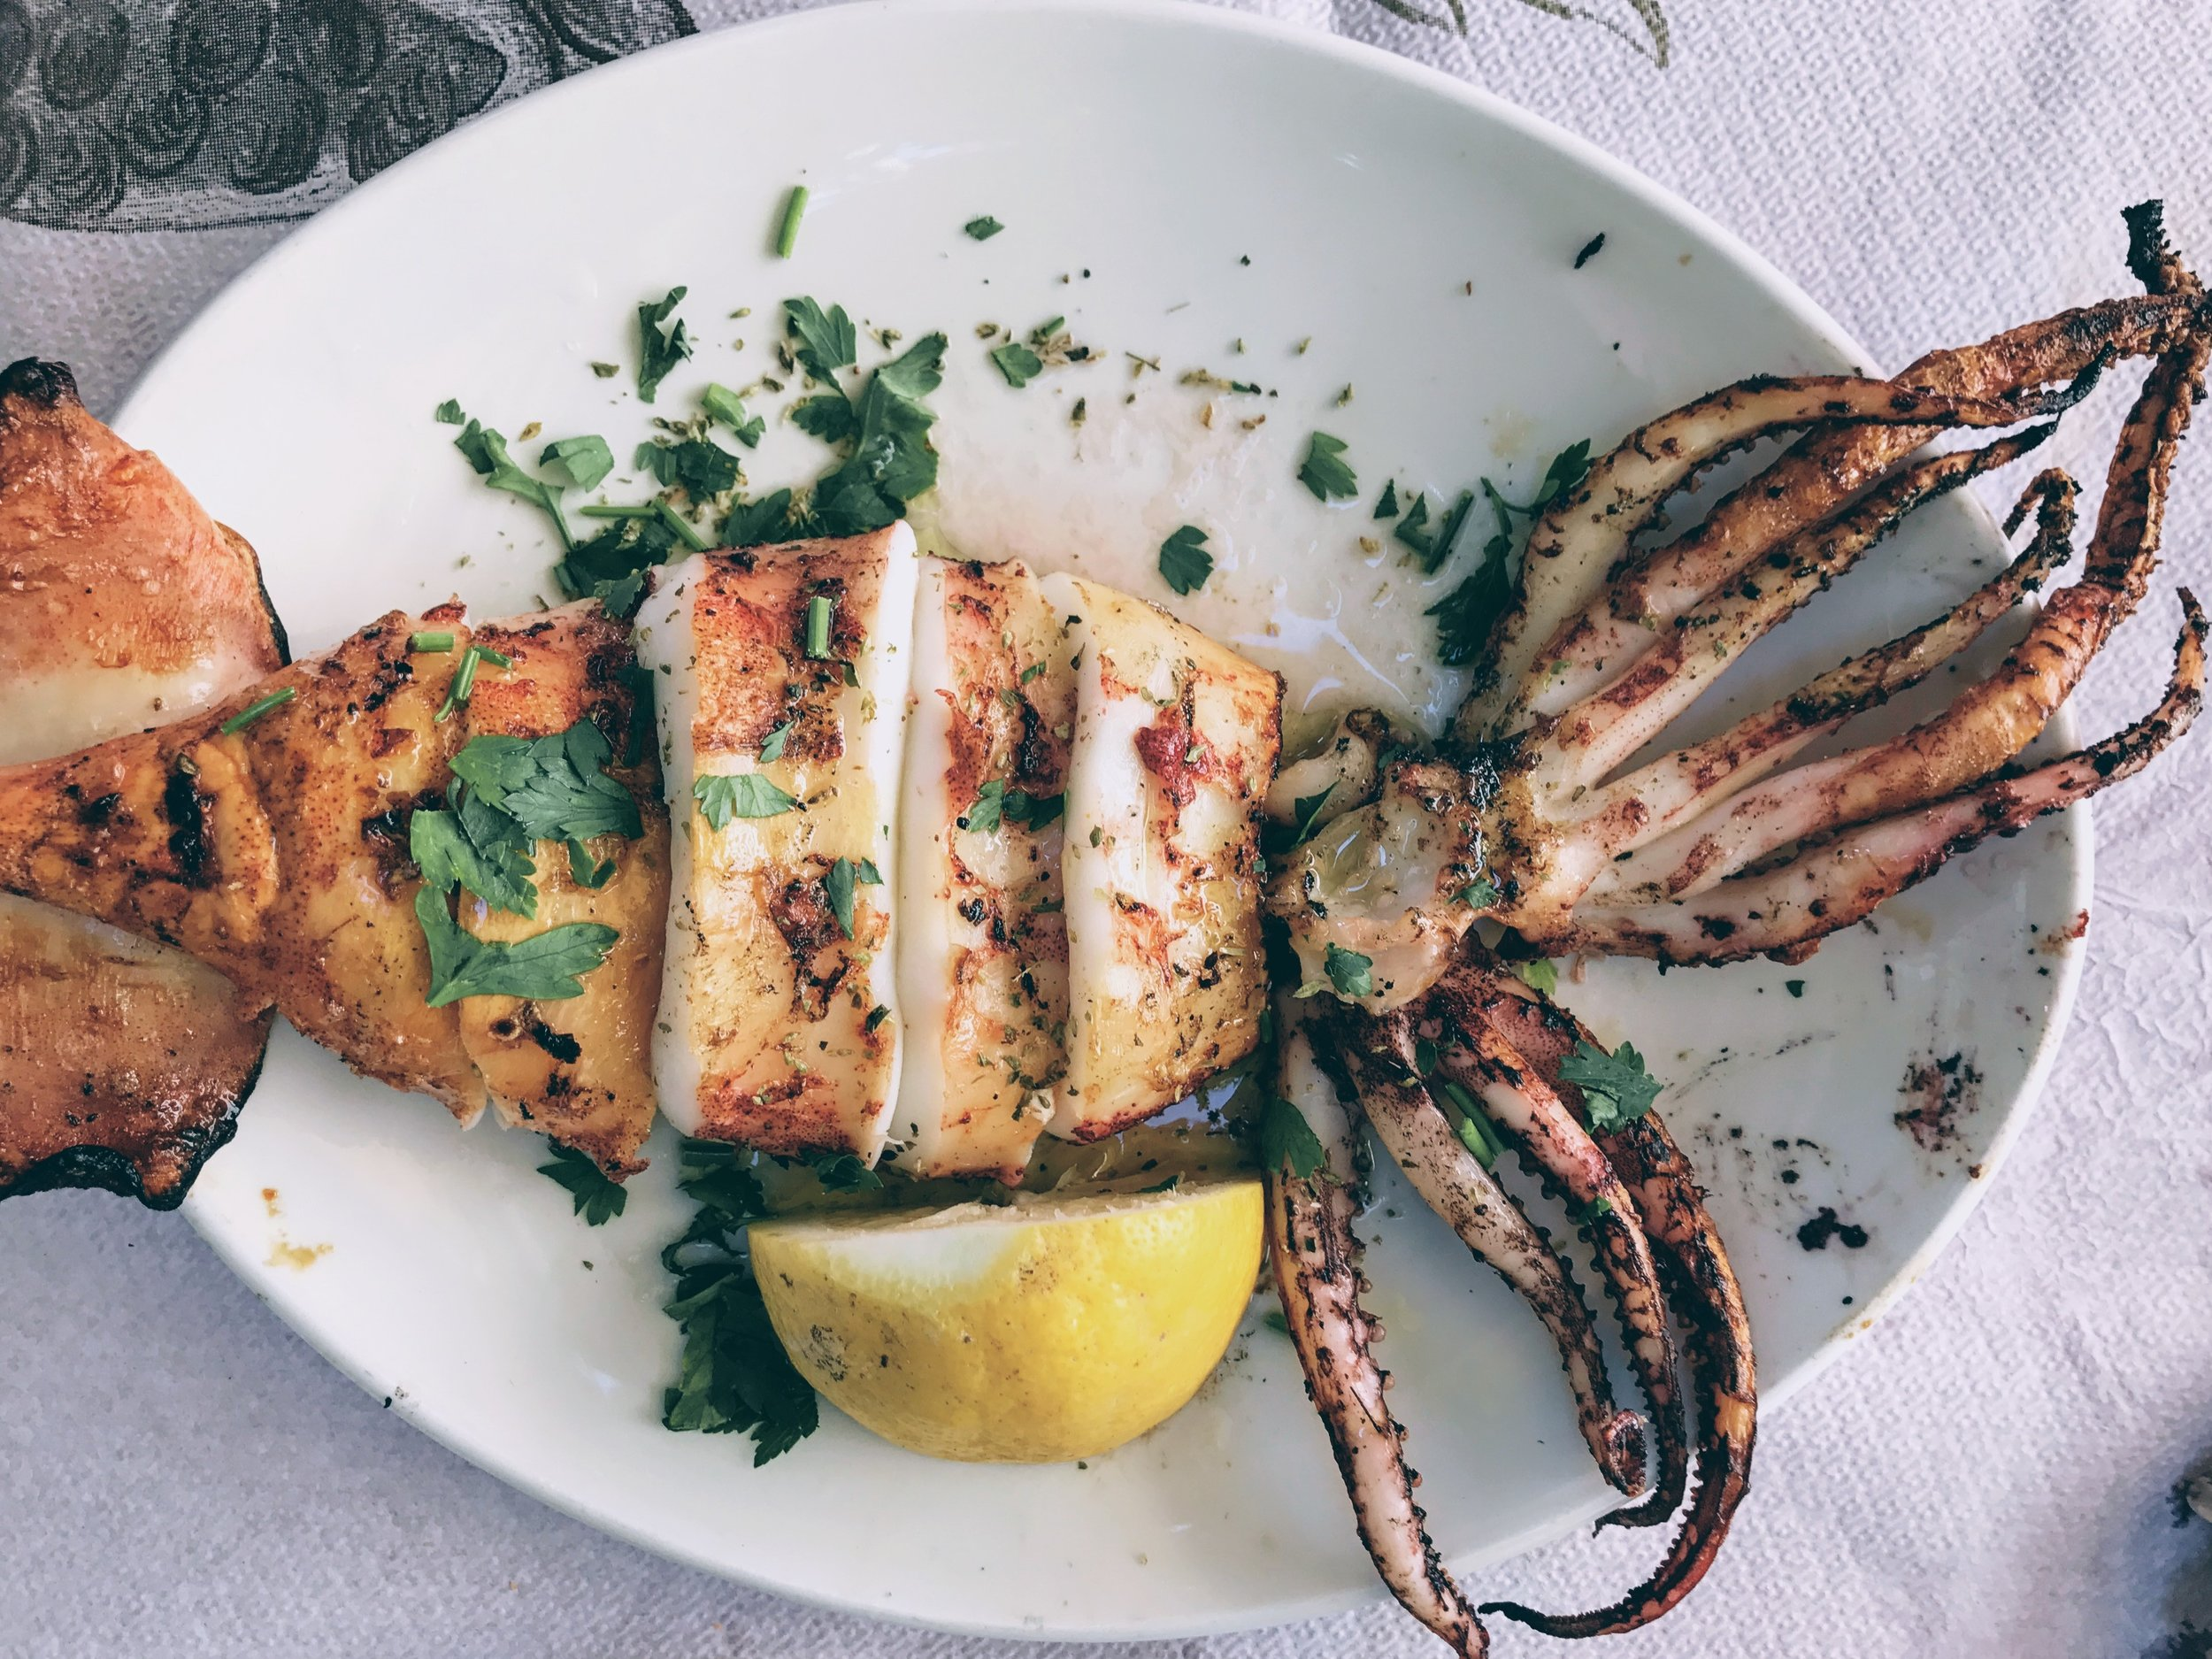 Athens: Greek traditional seafood in Lavrio's To steki tou Mina